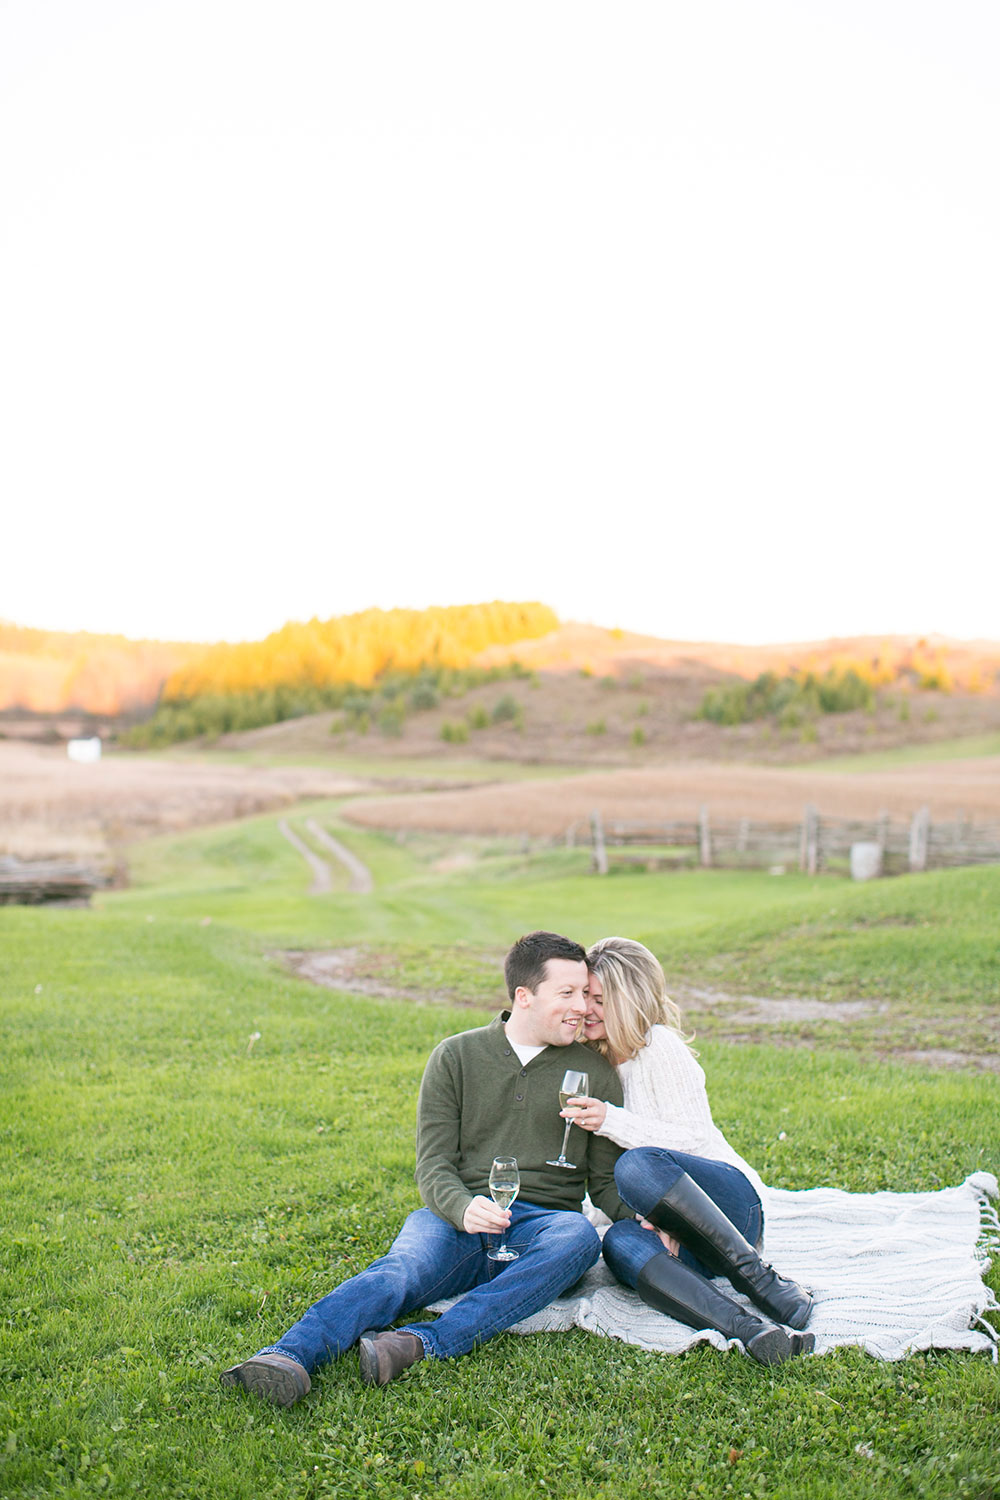 Albion-Hills-Conservation-Park-engagement-session-caledon-photo-by-philosophy-studios-eva-derrick-photography-023.jpg